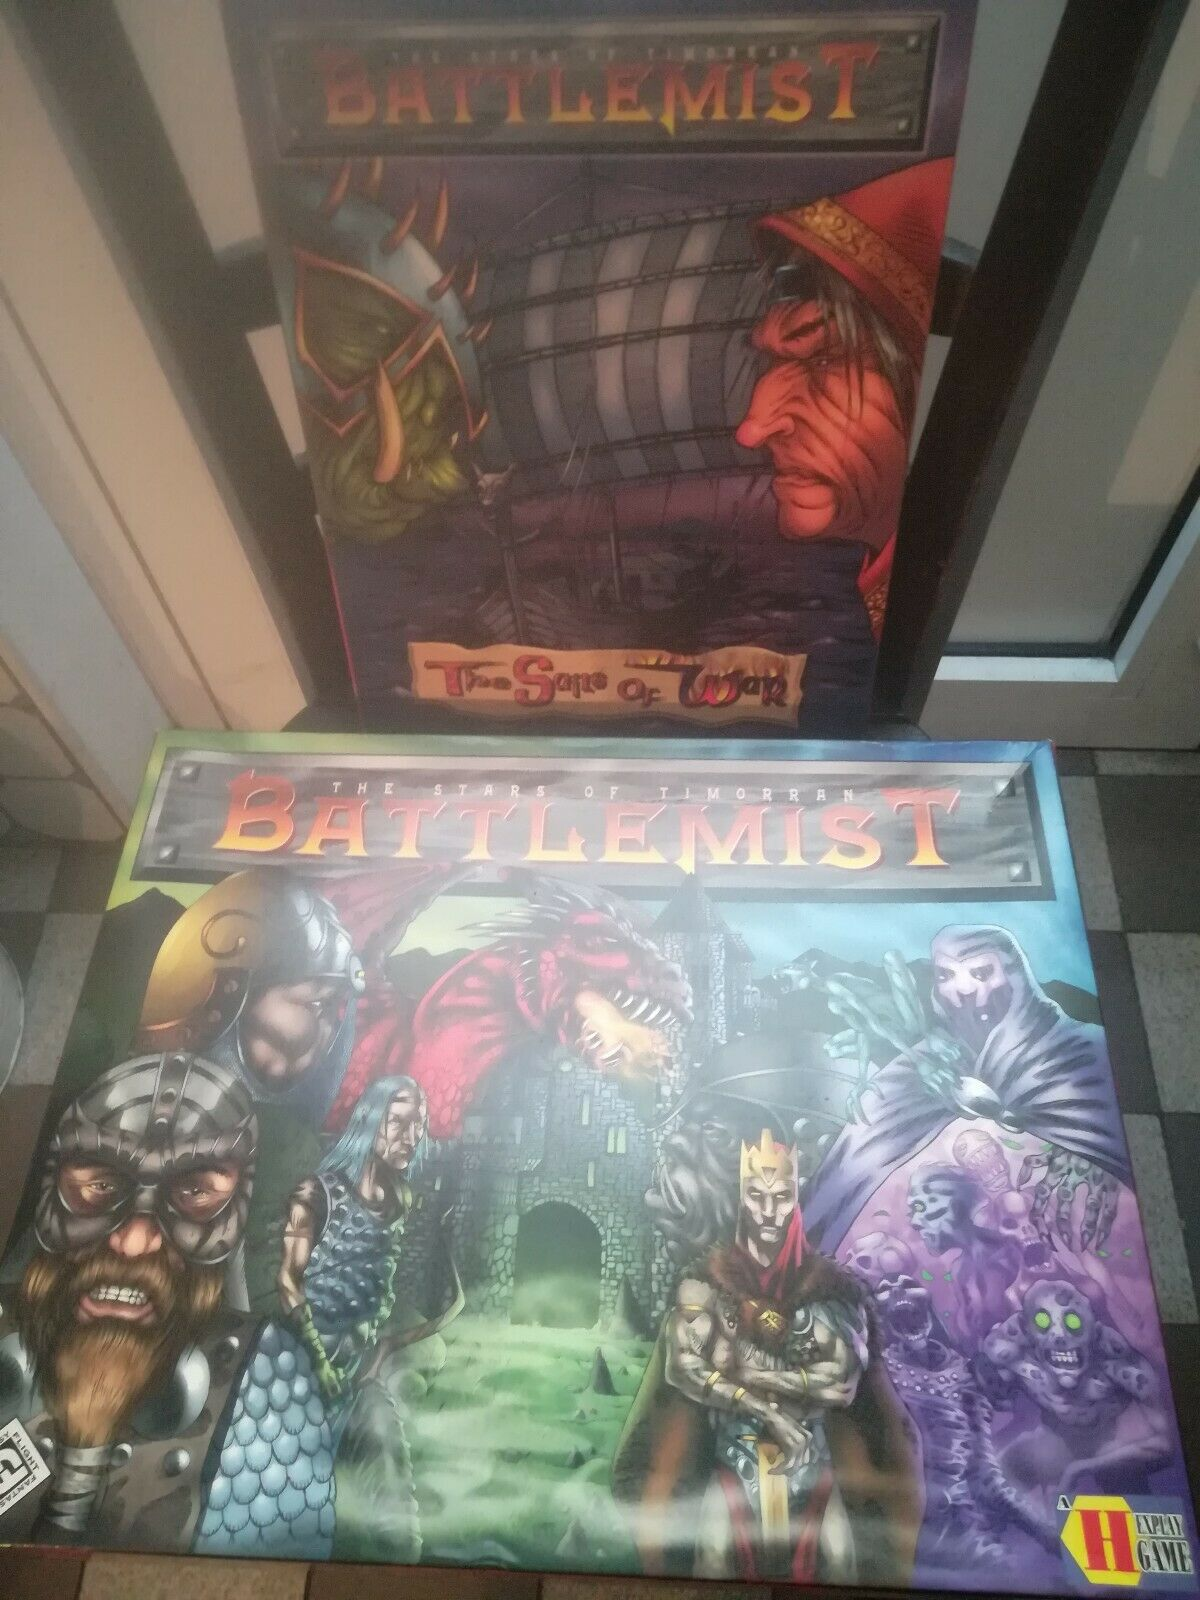 Battlemist+Sails of War Erw.   Fantasy Flight   Sammelauflösung   Fantasy   Rar